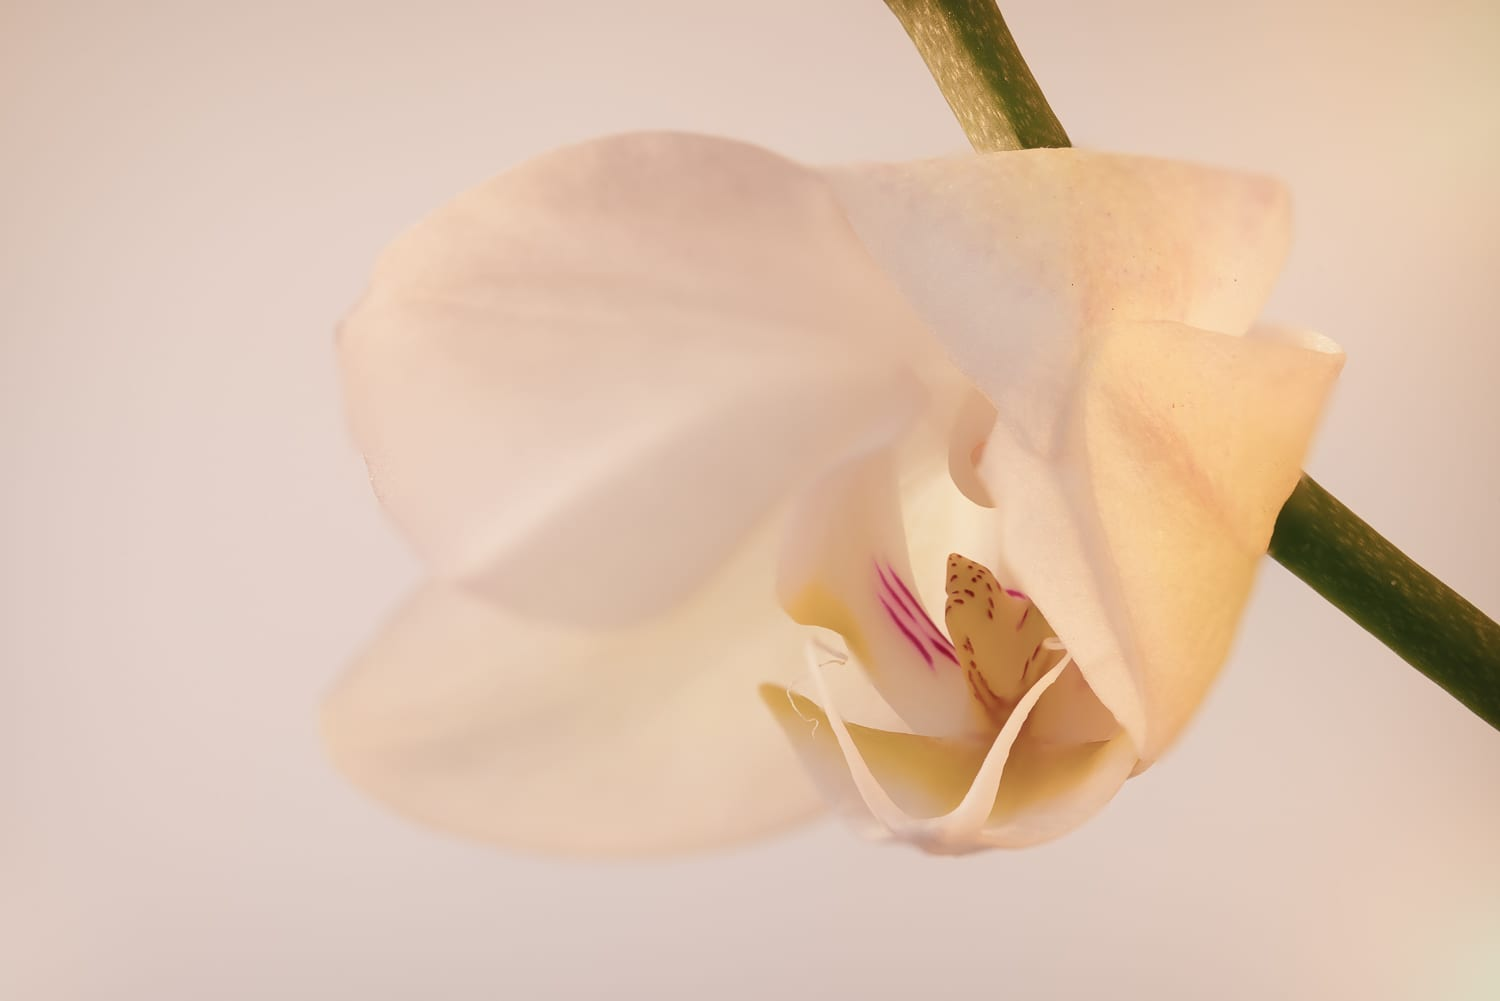 White orchid bud opening